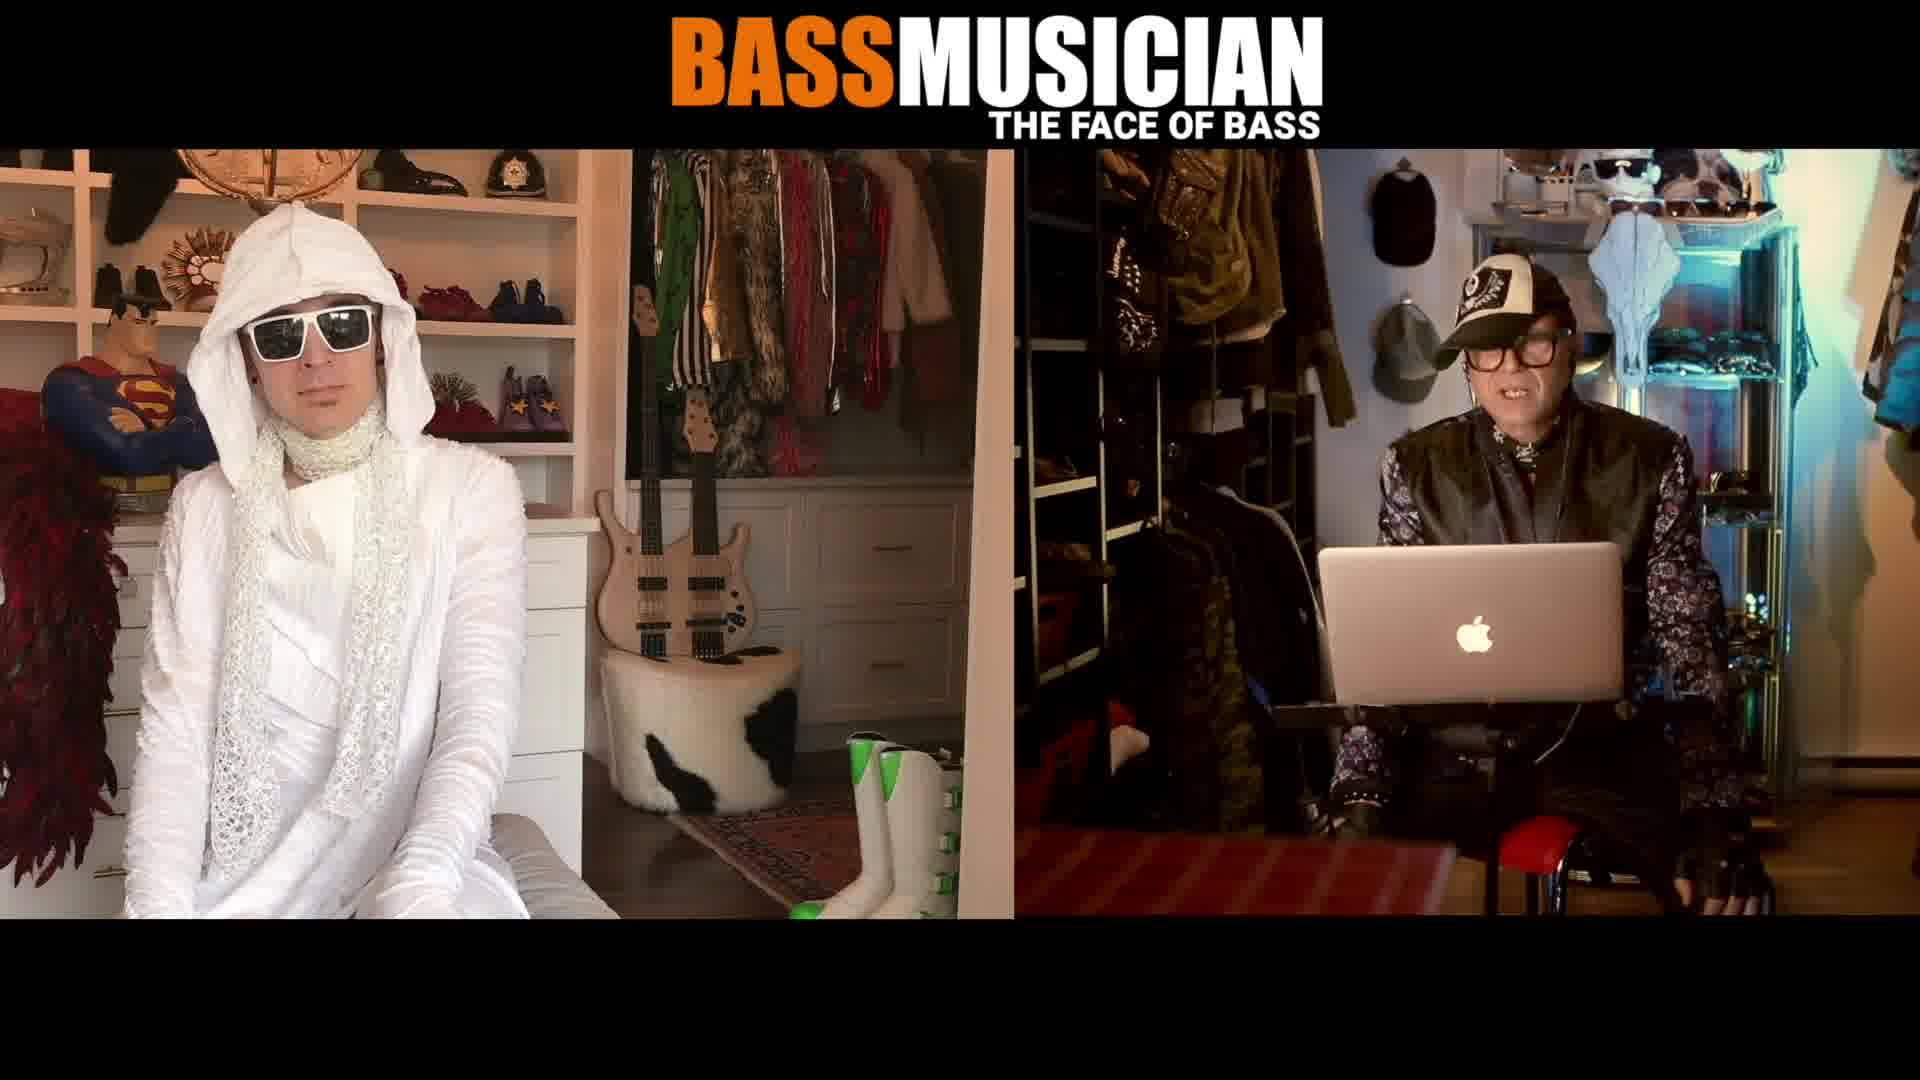 BASS FROM INSIDE THE CLOSET WITH FREEKBASS Here is part 2 of the Freekbass interview that talks about the Magic of dressing for the part as well as some really cool tips and tricks and close up view of his Stonefield custom double neck bass. Part 3 w